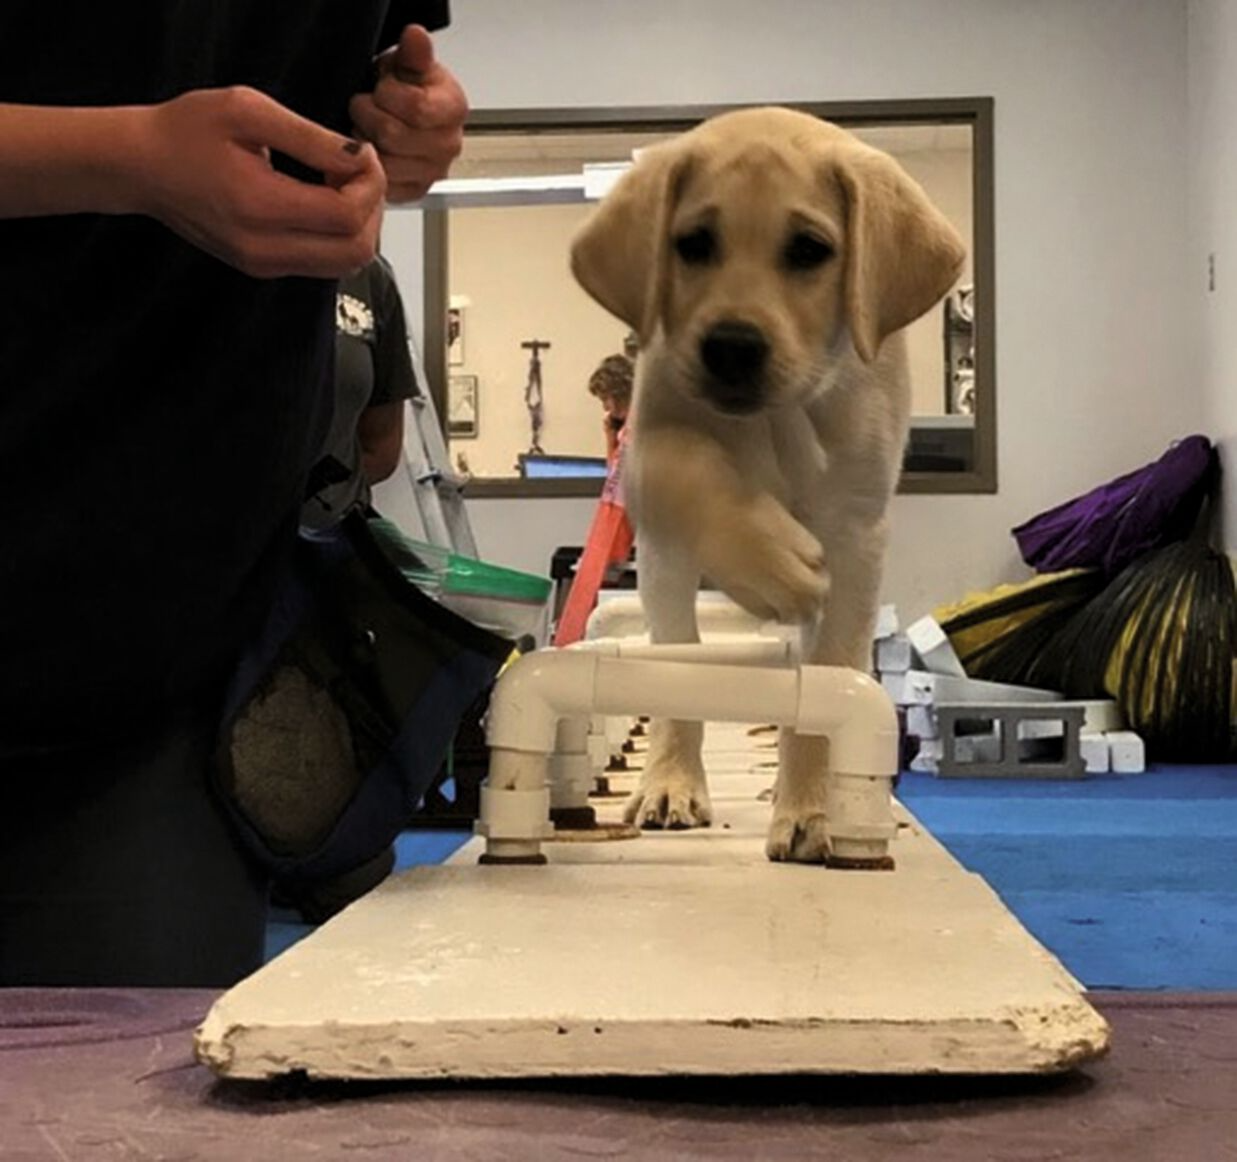 A 14-week-old Labrador puppy learns to navigate cavaletti rails.